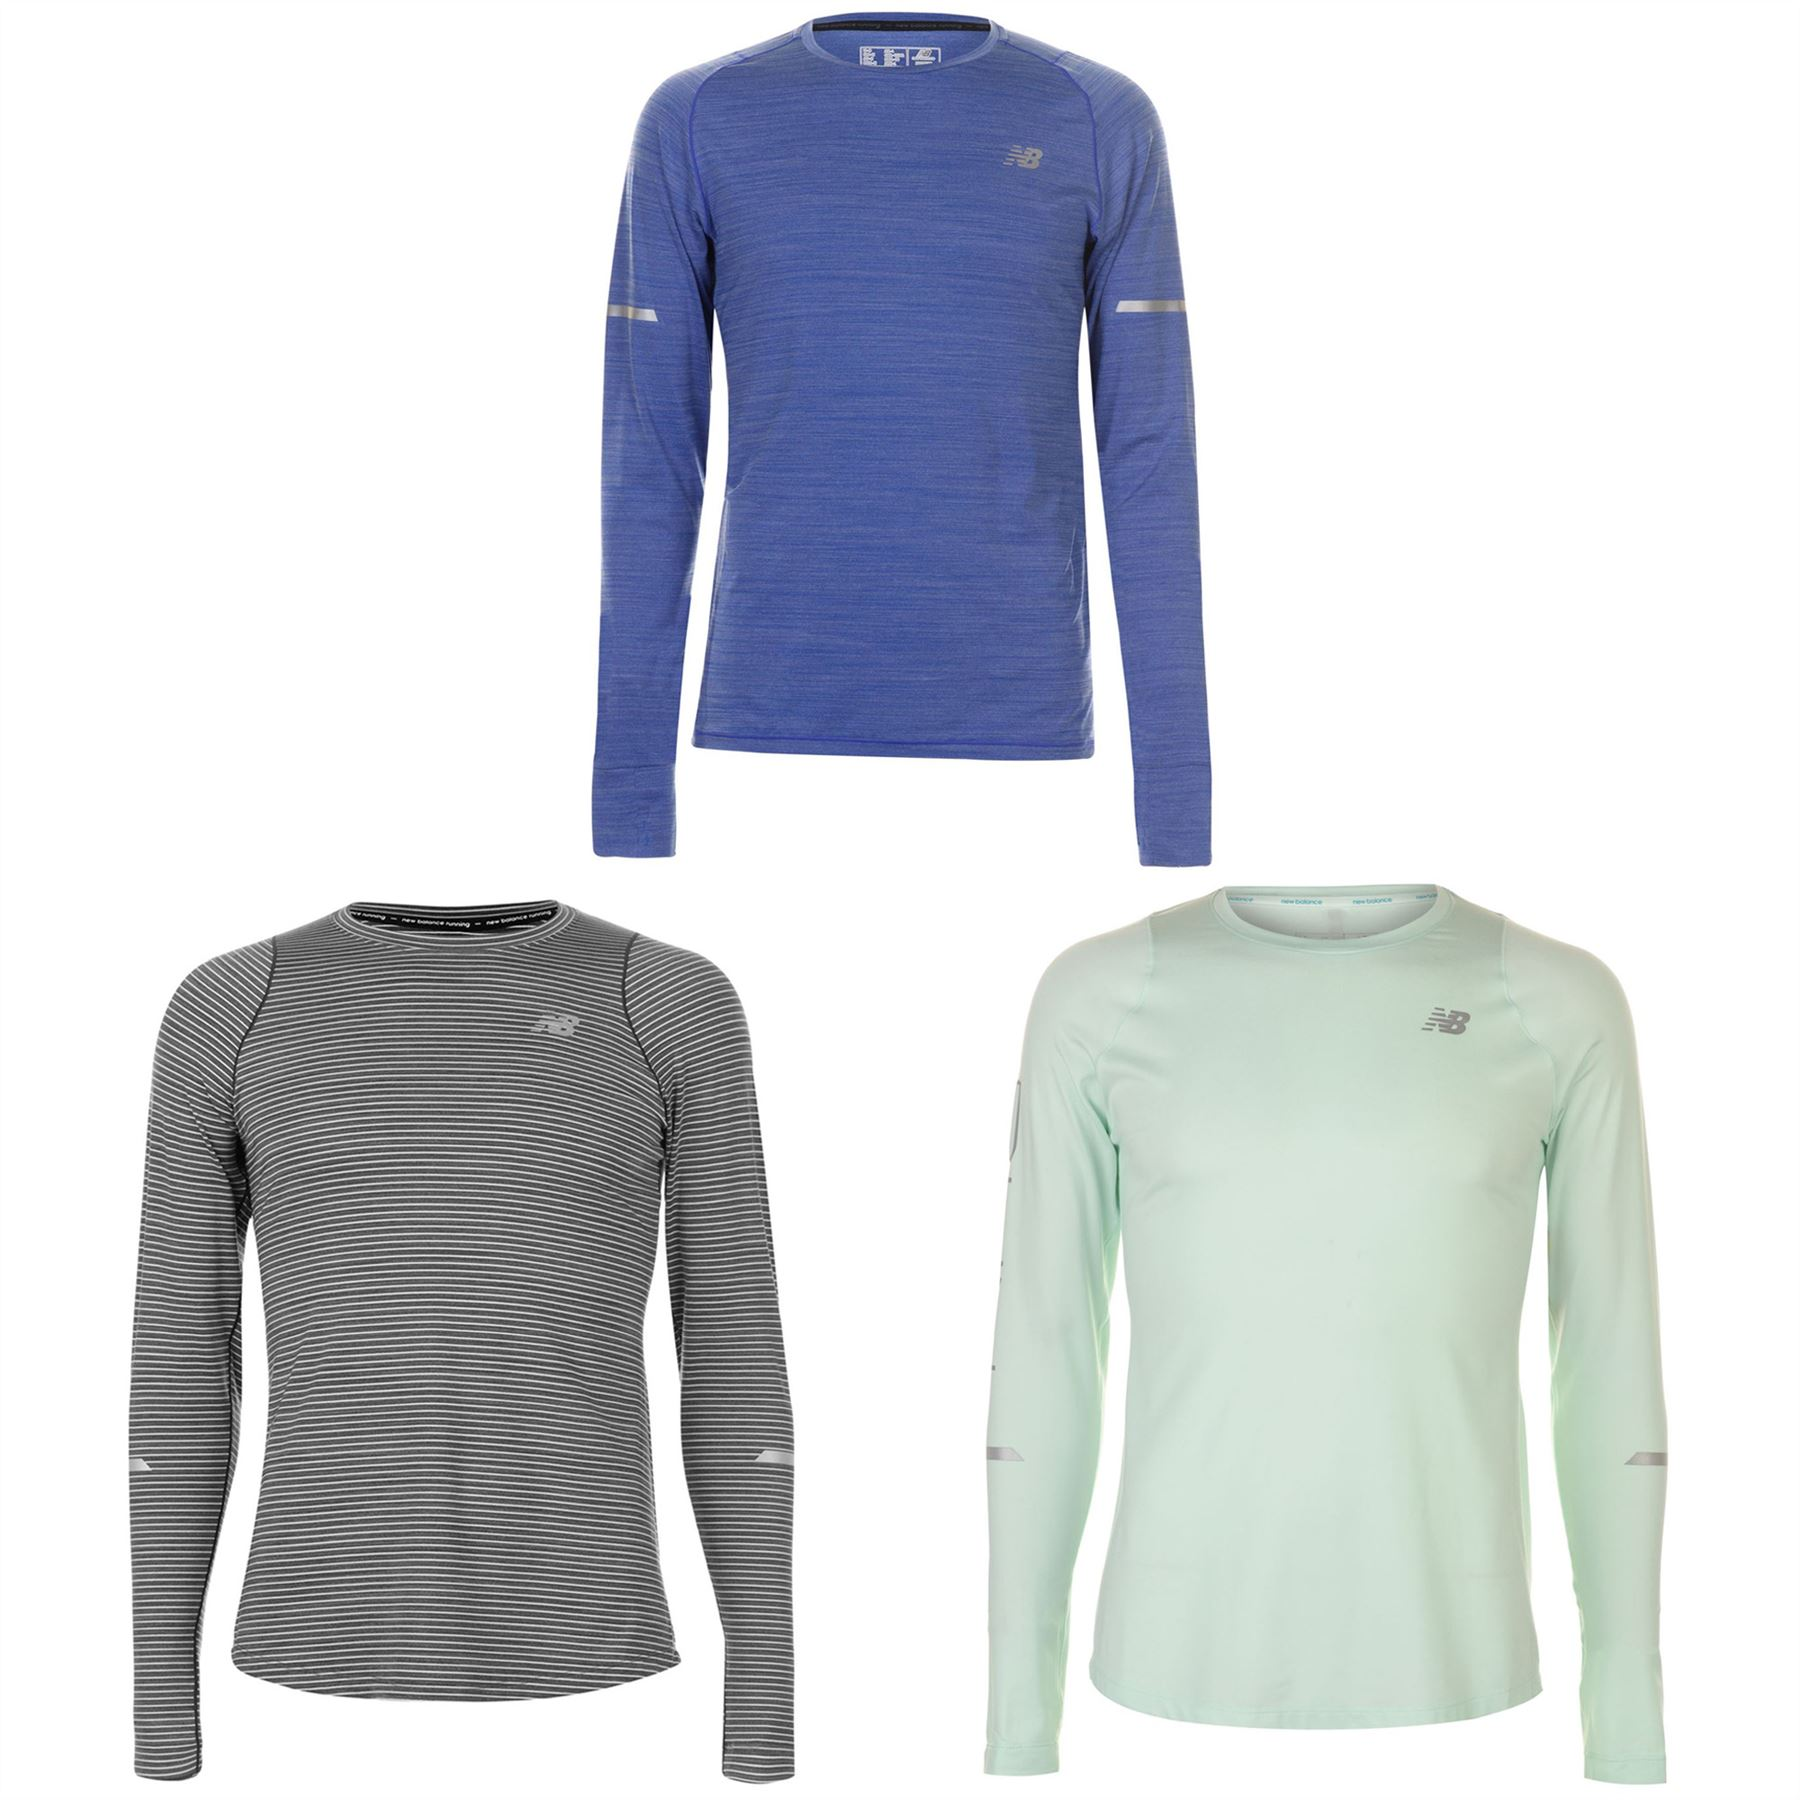 f1e1065d26 Details about New Balance Seasonless Long Sleeve Running Top Mens Jogging  Fitness T-Shirt Tee